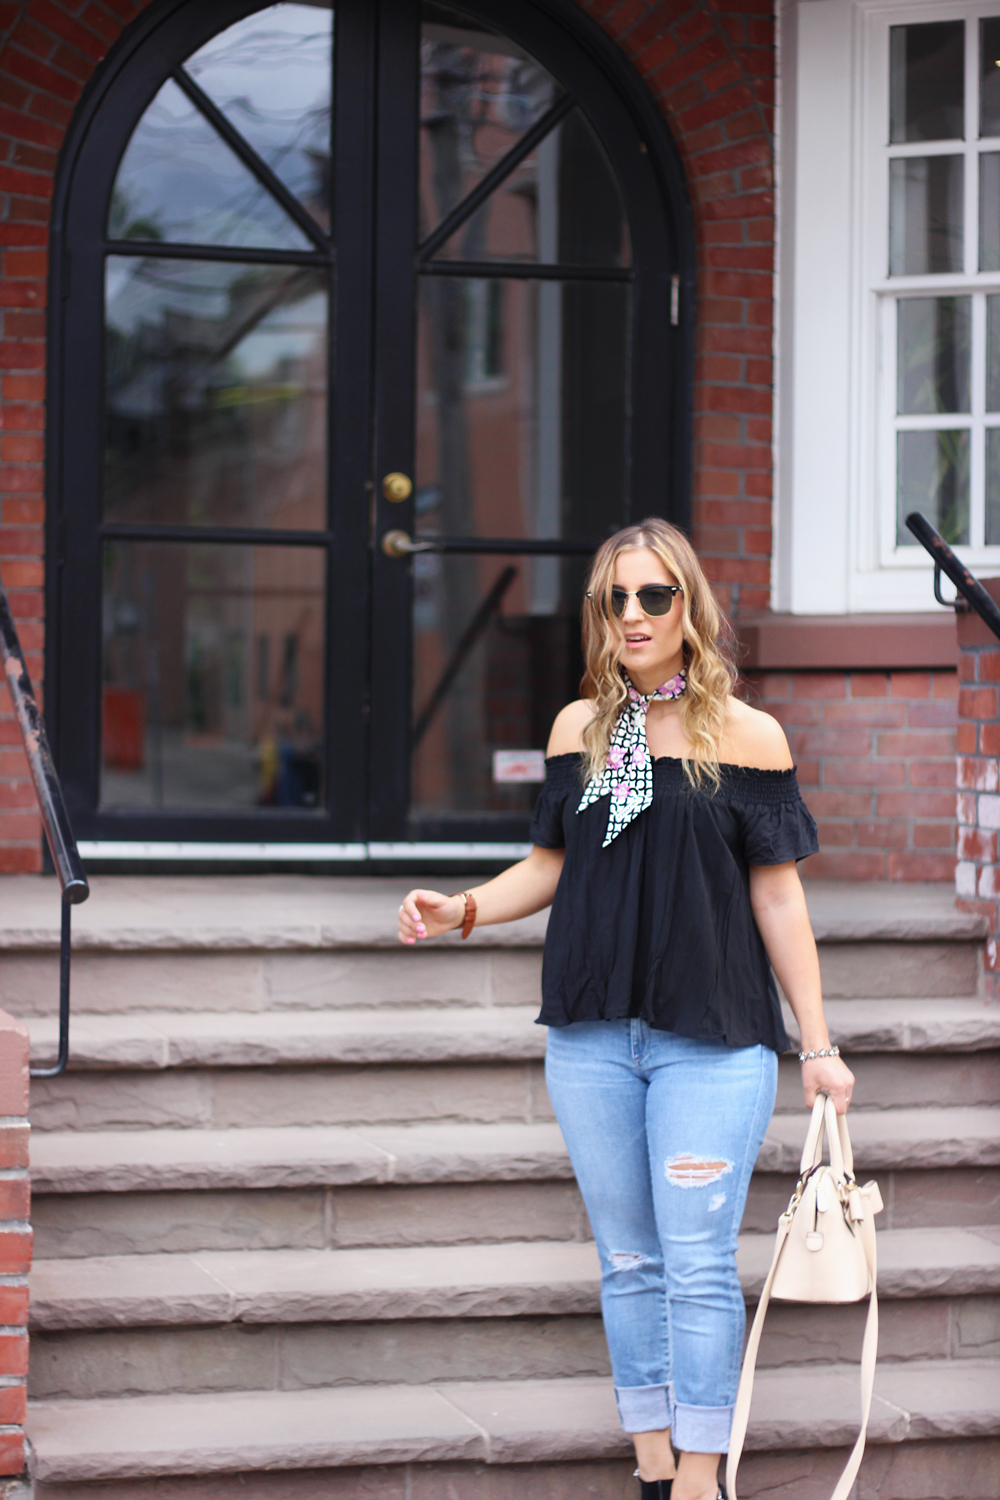 Toronto Street Style - Fashion, Beauty and Lifestyle Blogger